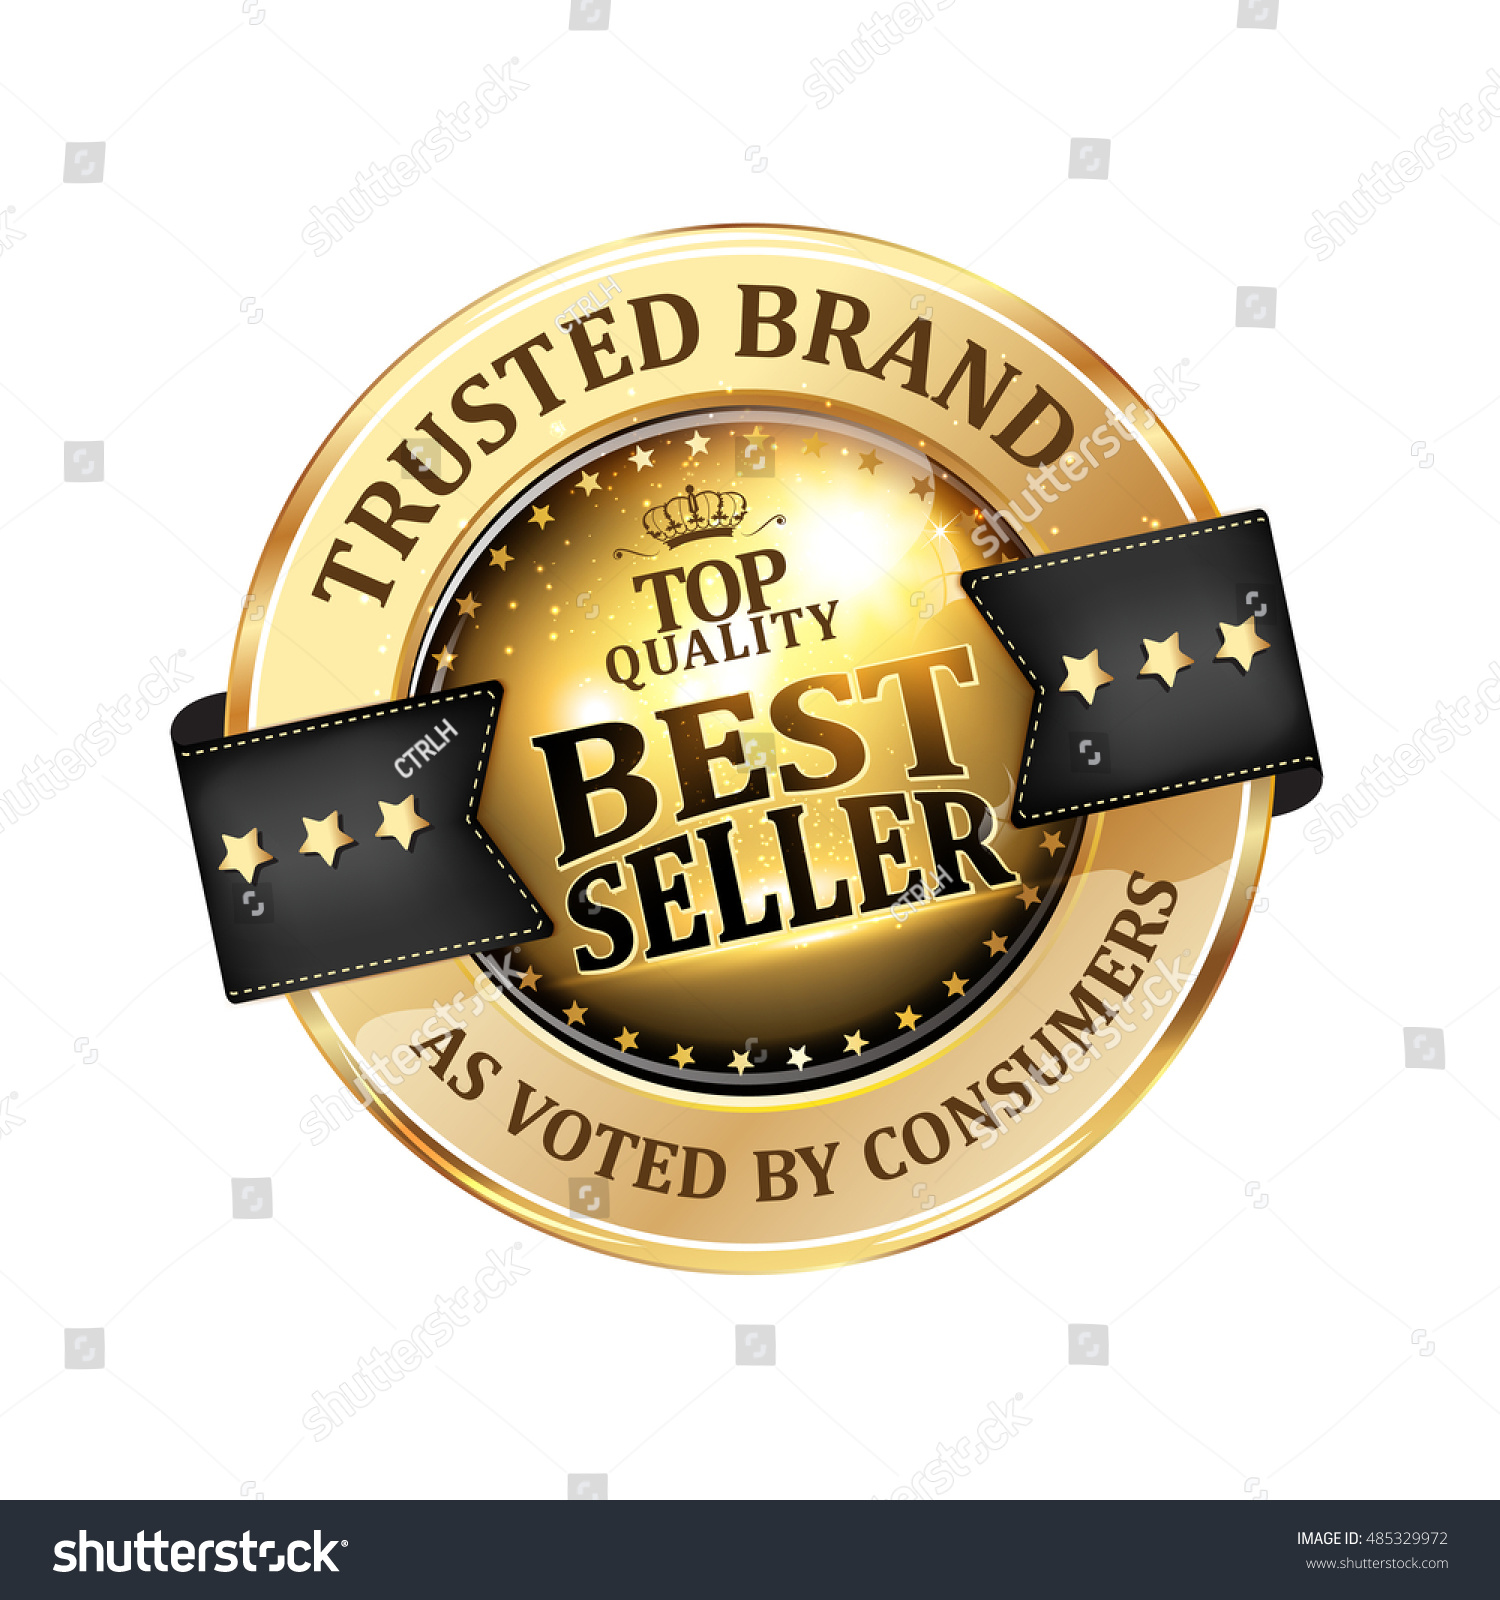 Best Seller, Trusted Brand, As Voted By Consumers   Luxurious Elegant Icon  / Ribbon